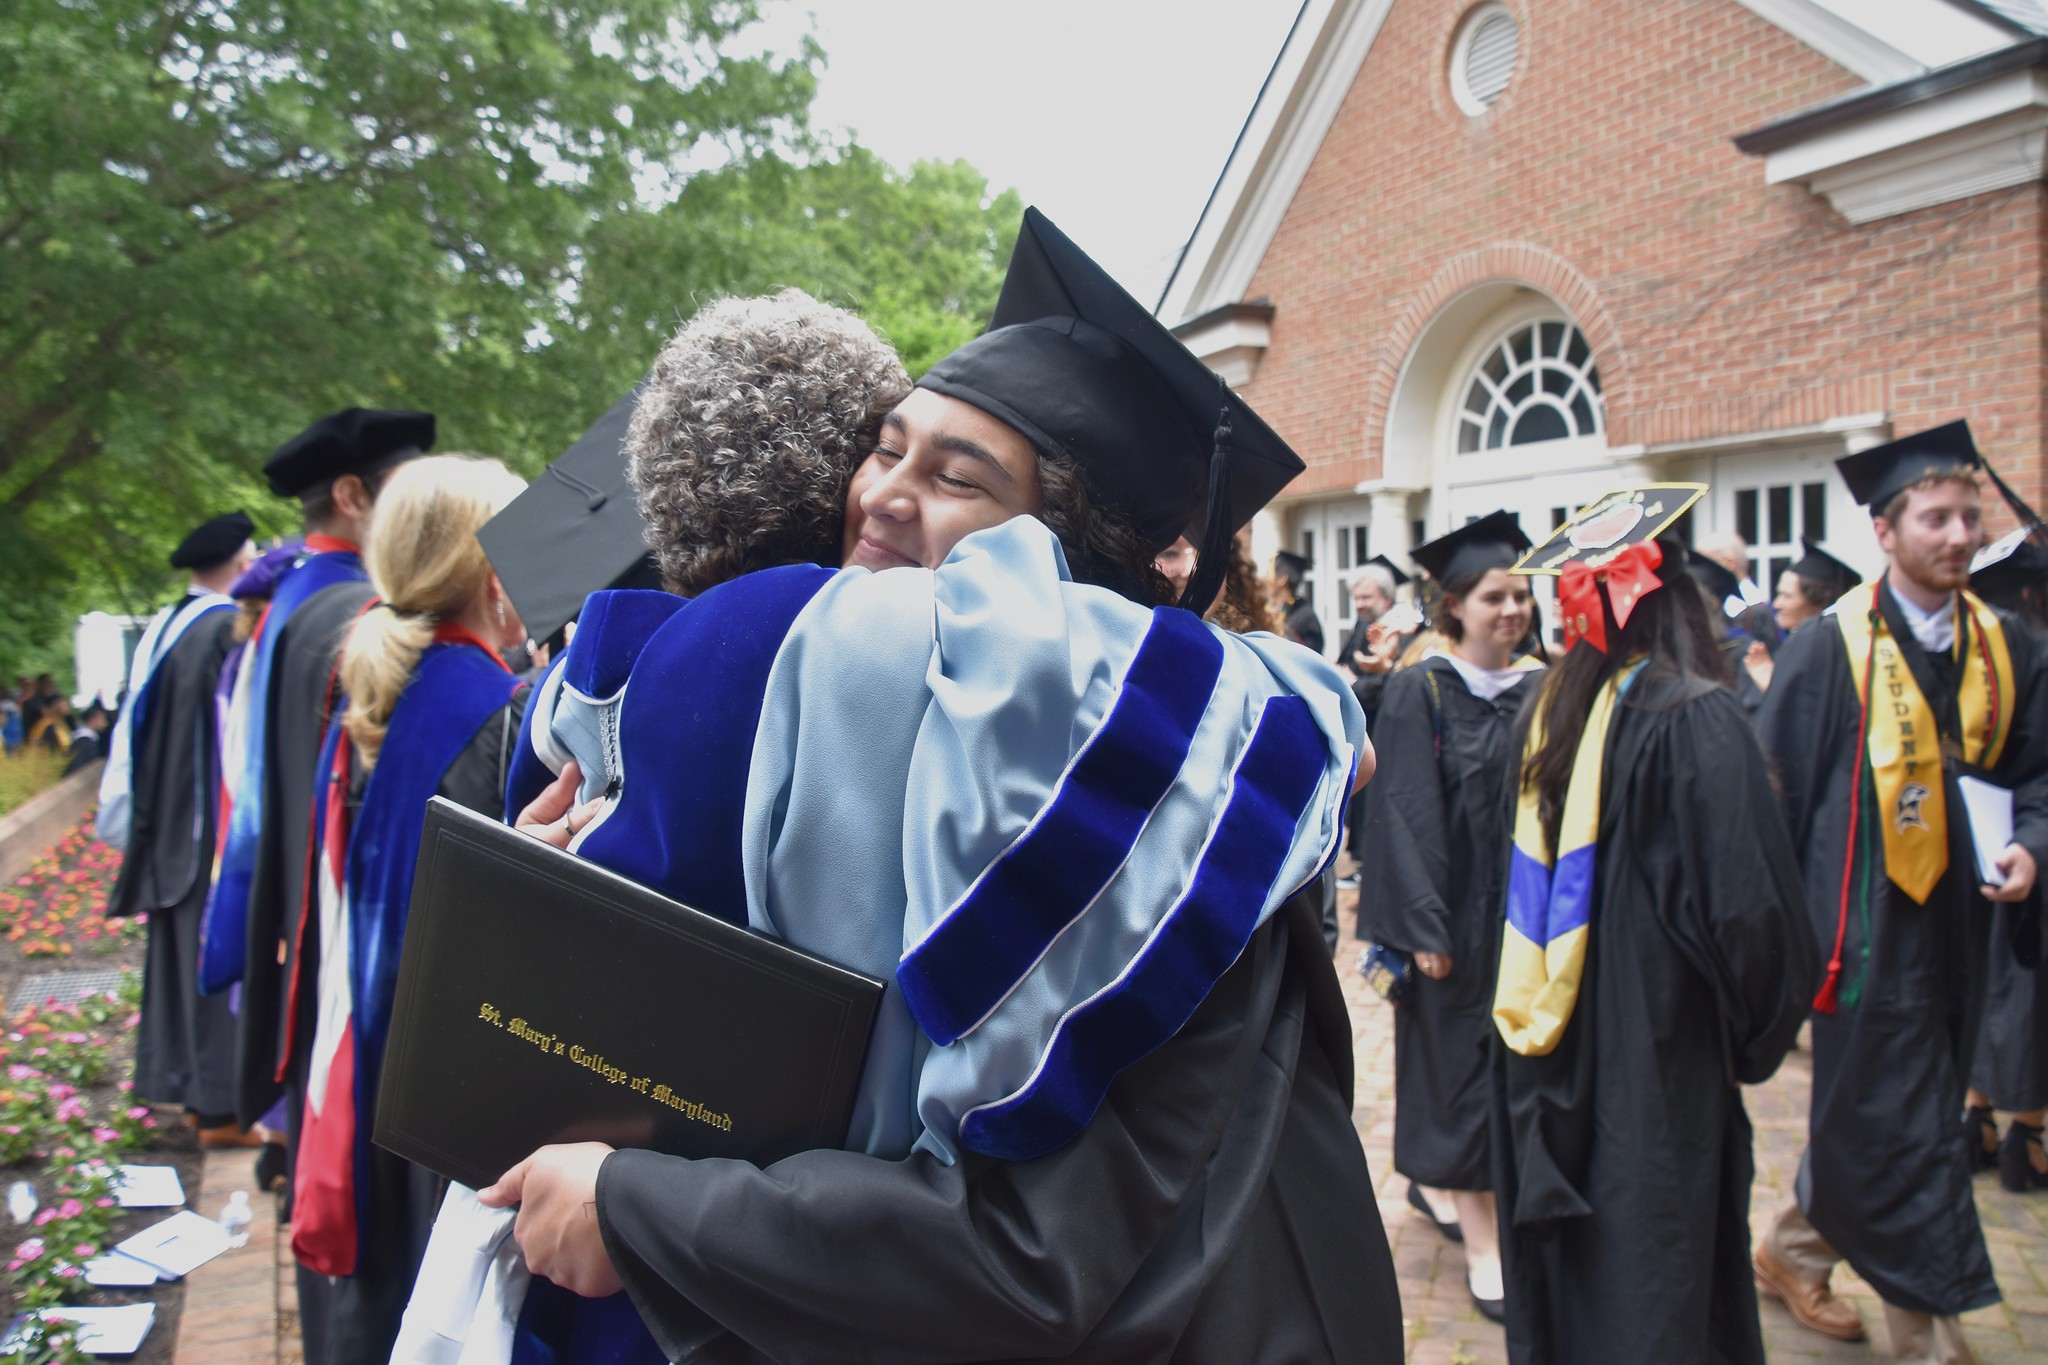 New graduates and faculty hugging it out at Commencement